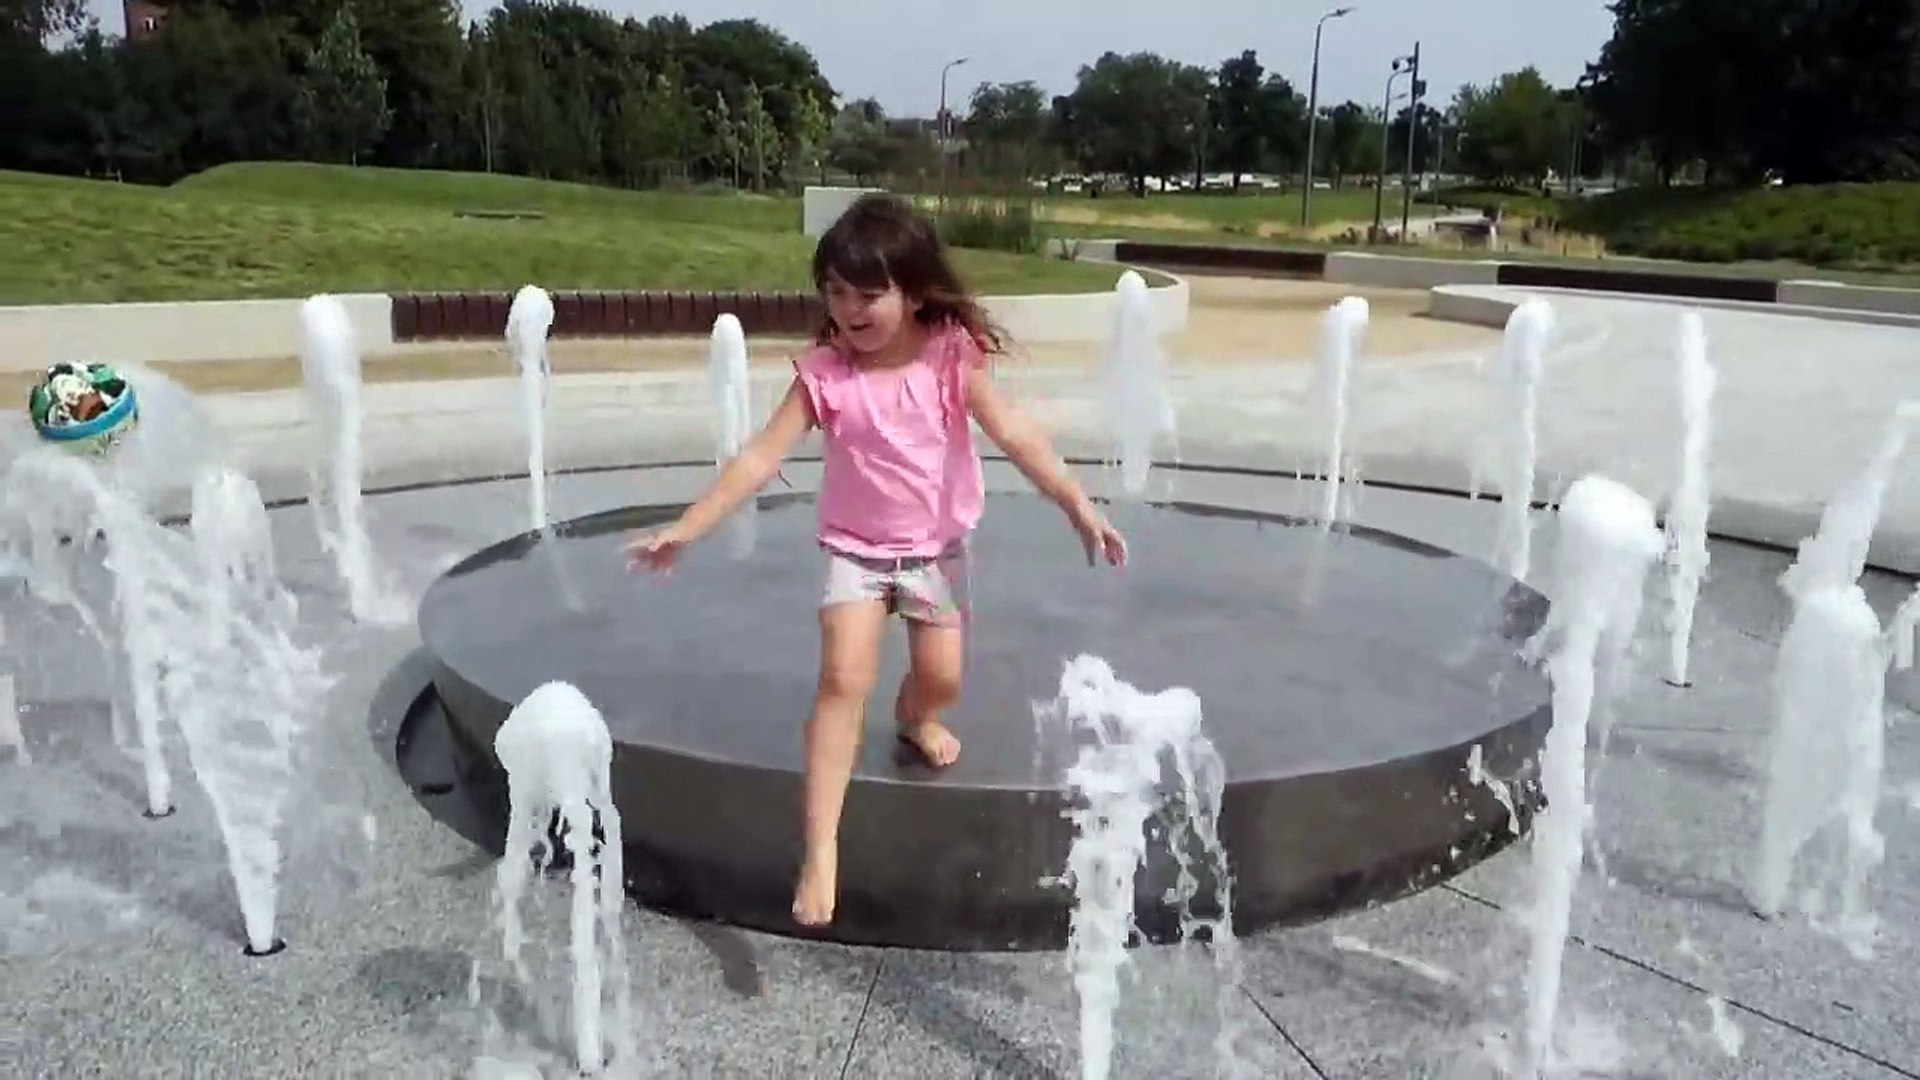 Activities for kids in the park Fun games for kids children toddlers with water